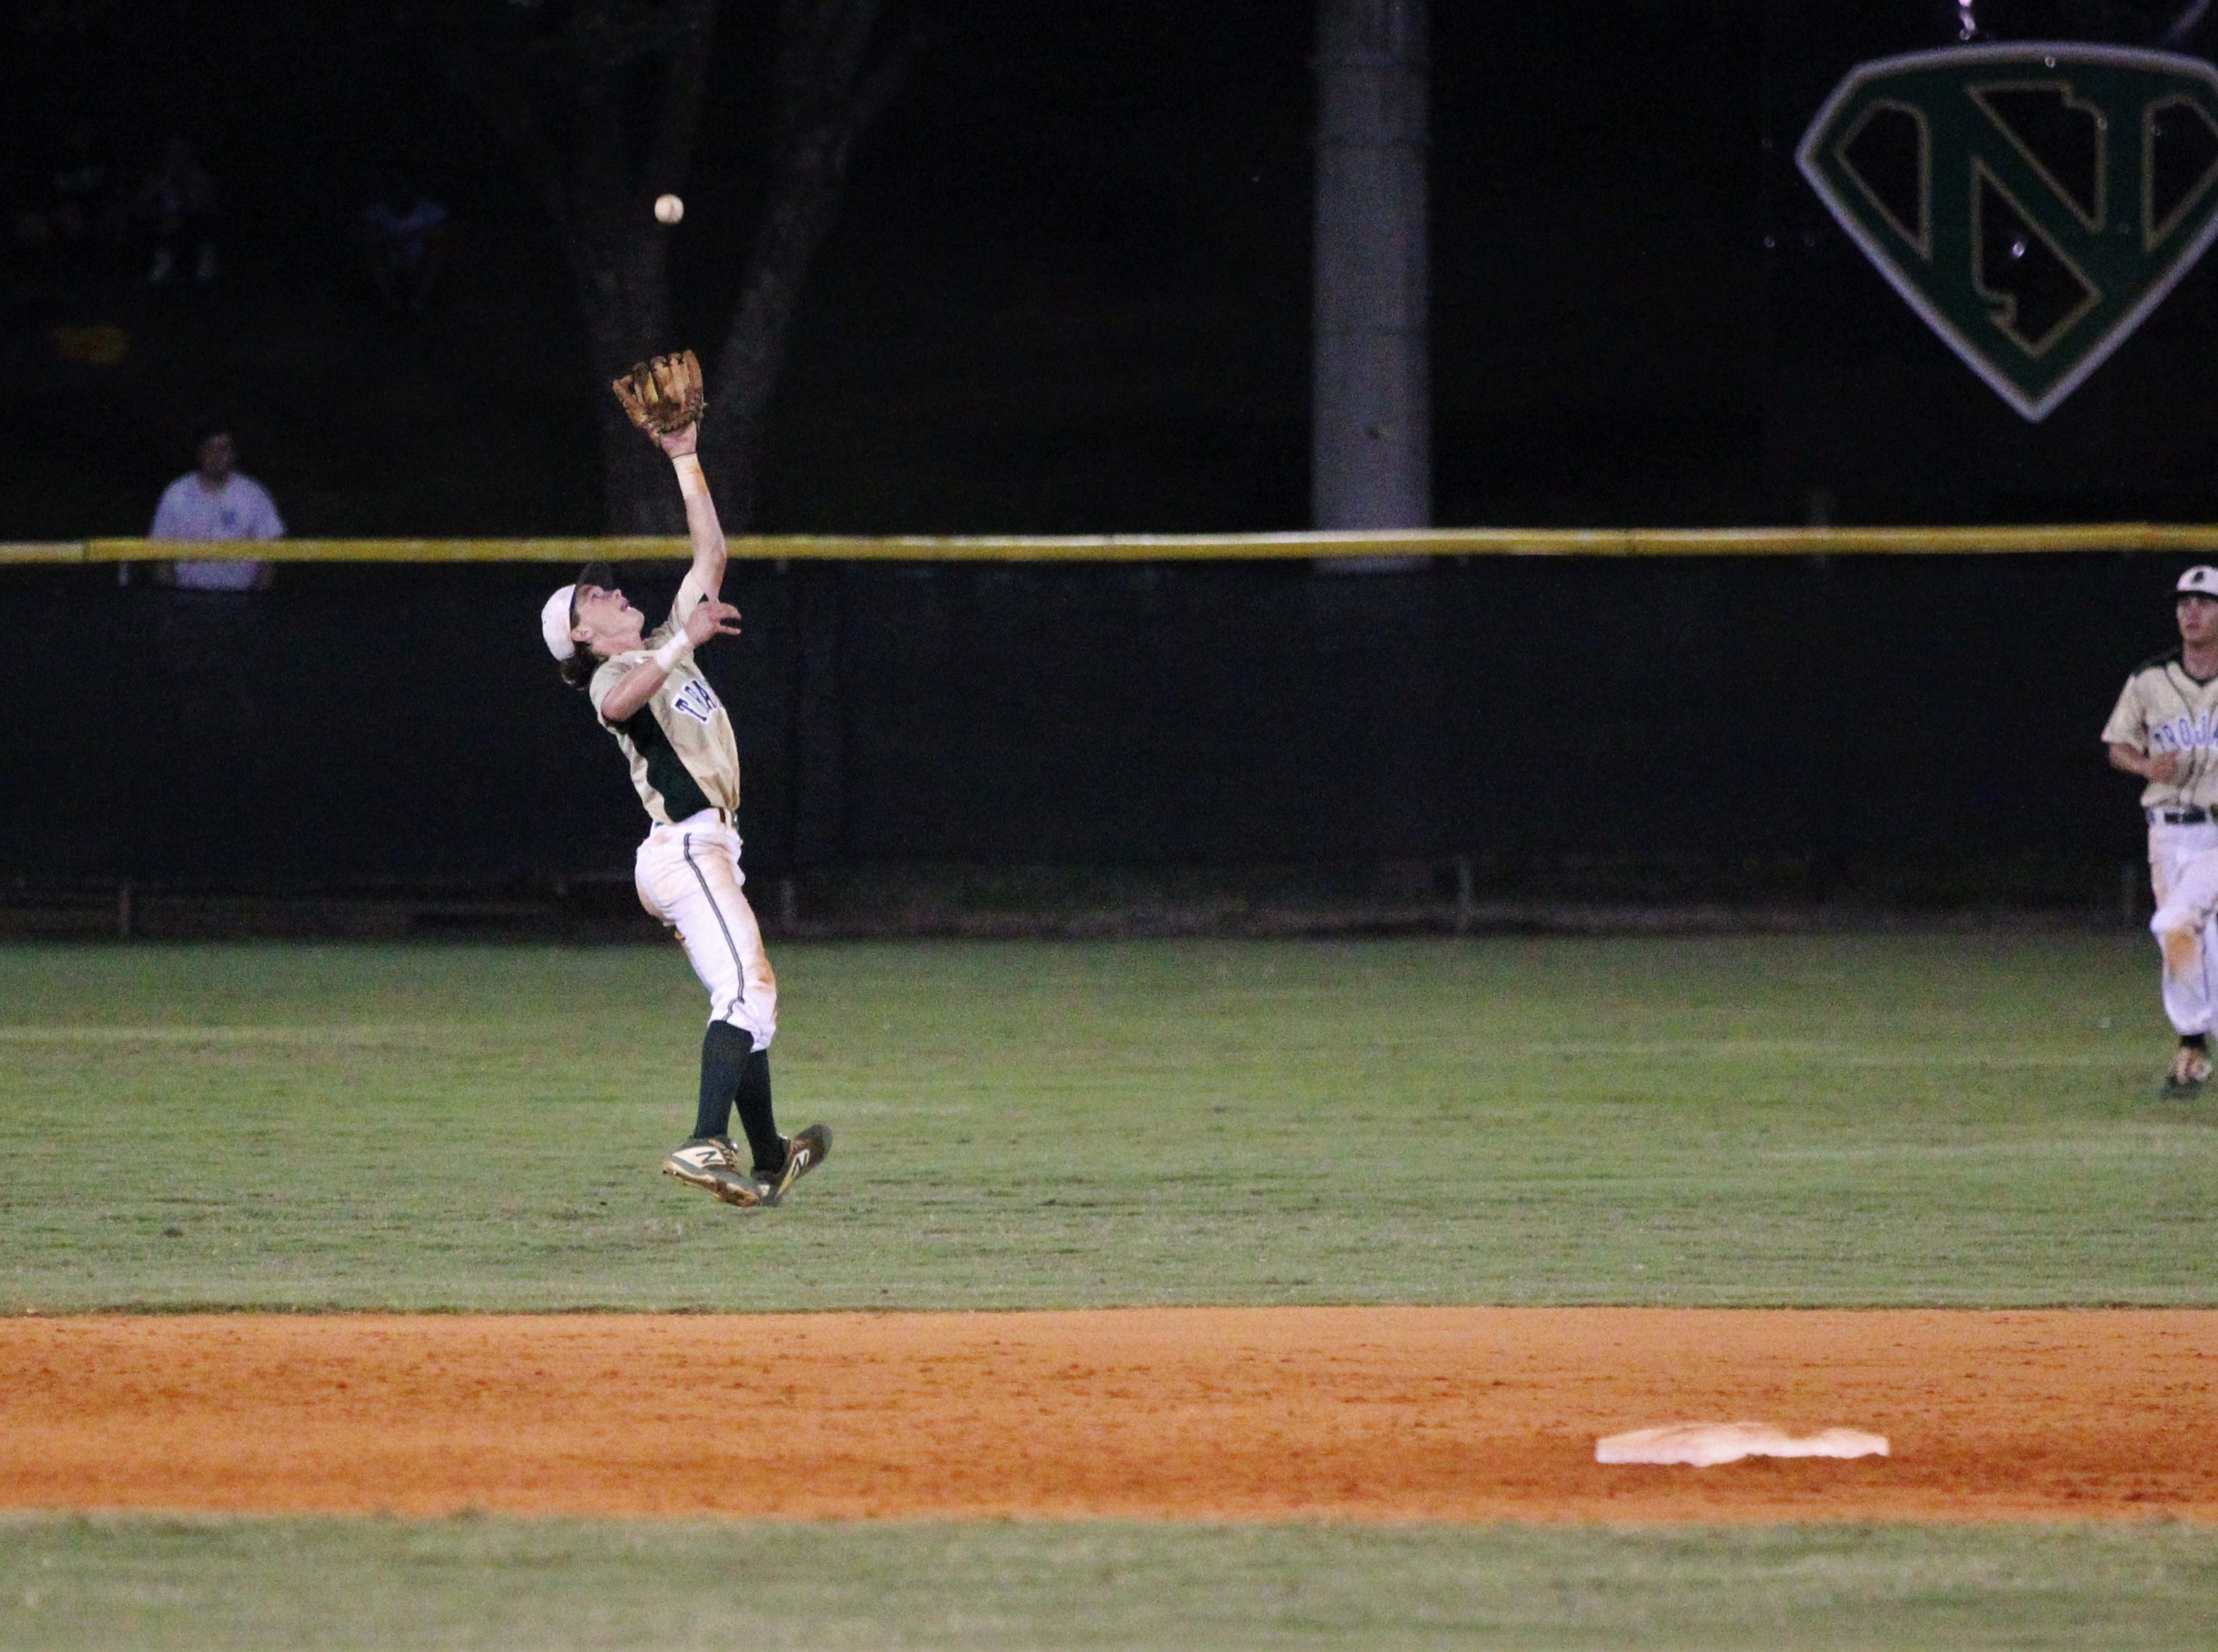 Lincoln shortstop Nick Standridge makes a leaping catch in the shallow outfield as Lincoln baseball beat Chiles 5-4  in 10 innings during a District 2-8A championship game on Thursday, May 9, 2019.